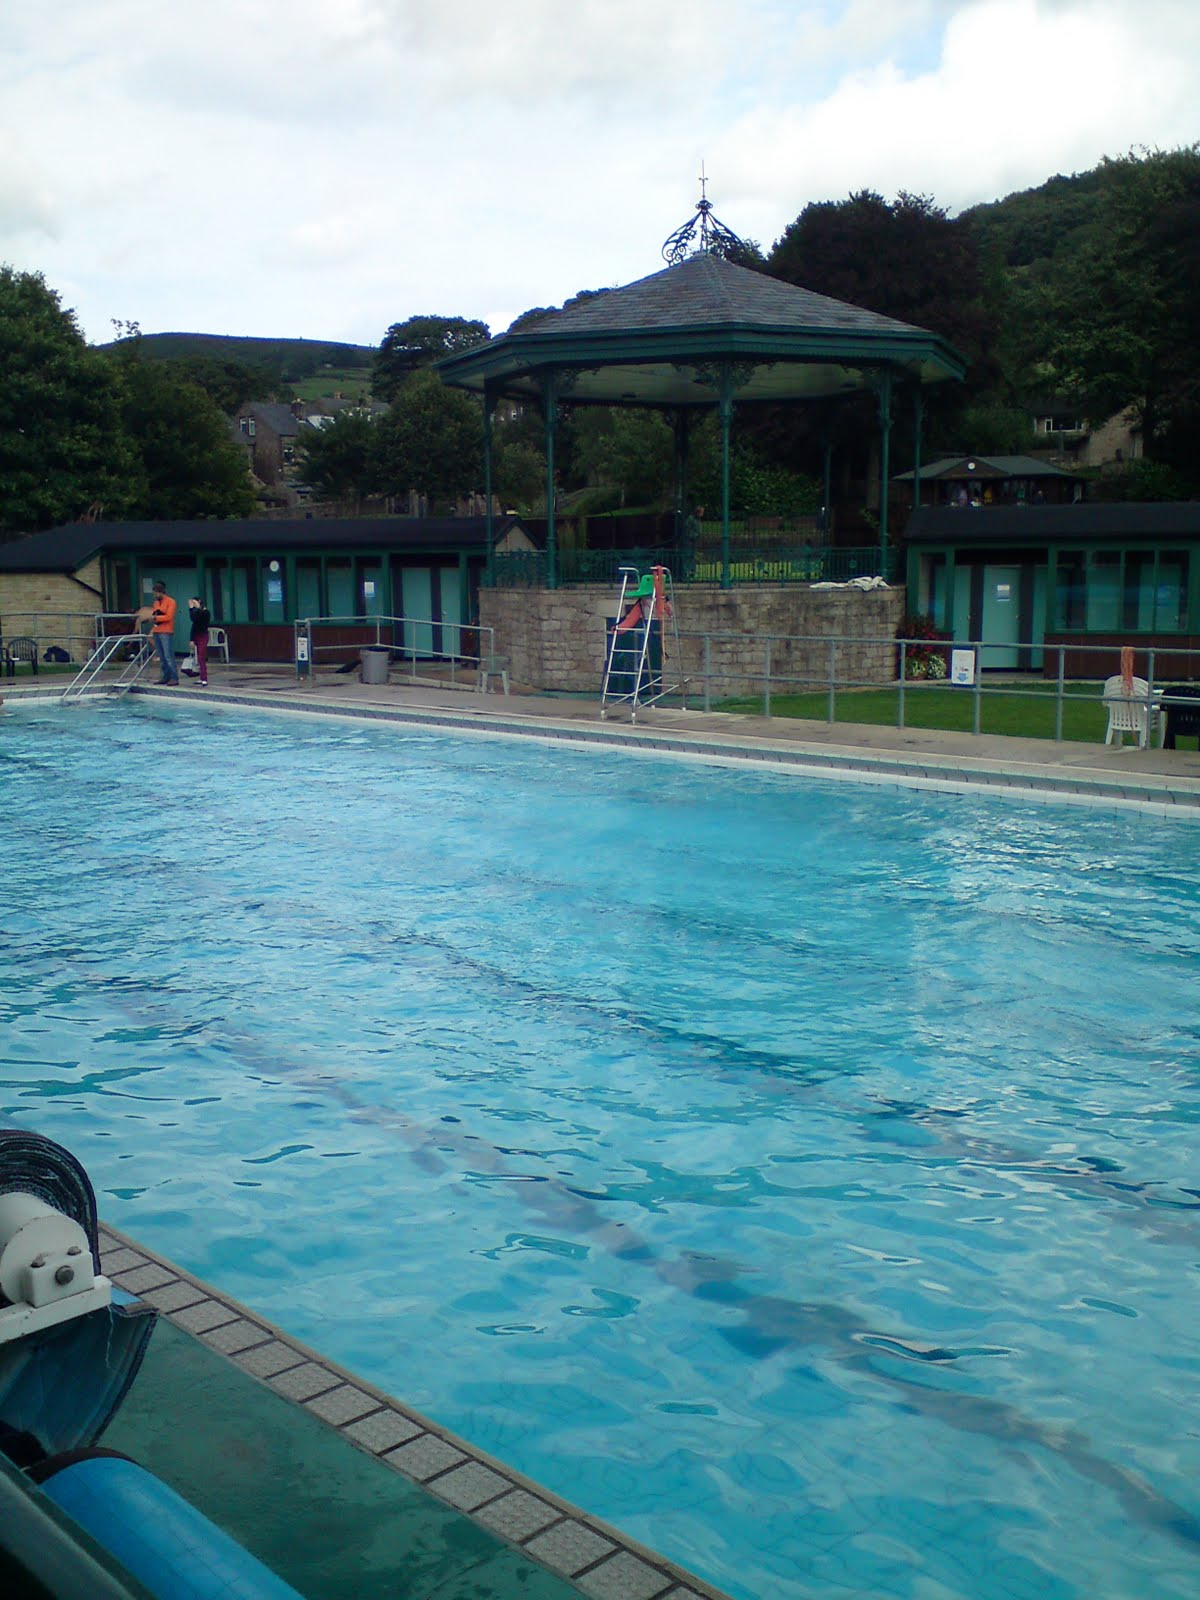 Swimming and writing august 2010 - Hathersage open air swimming pool ...